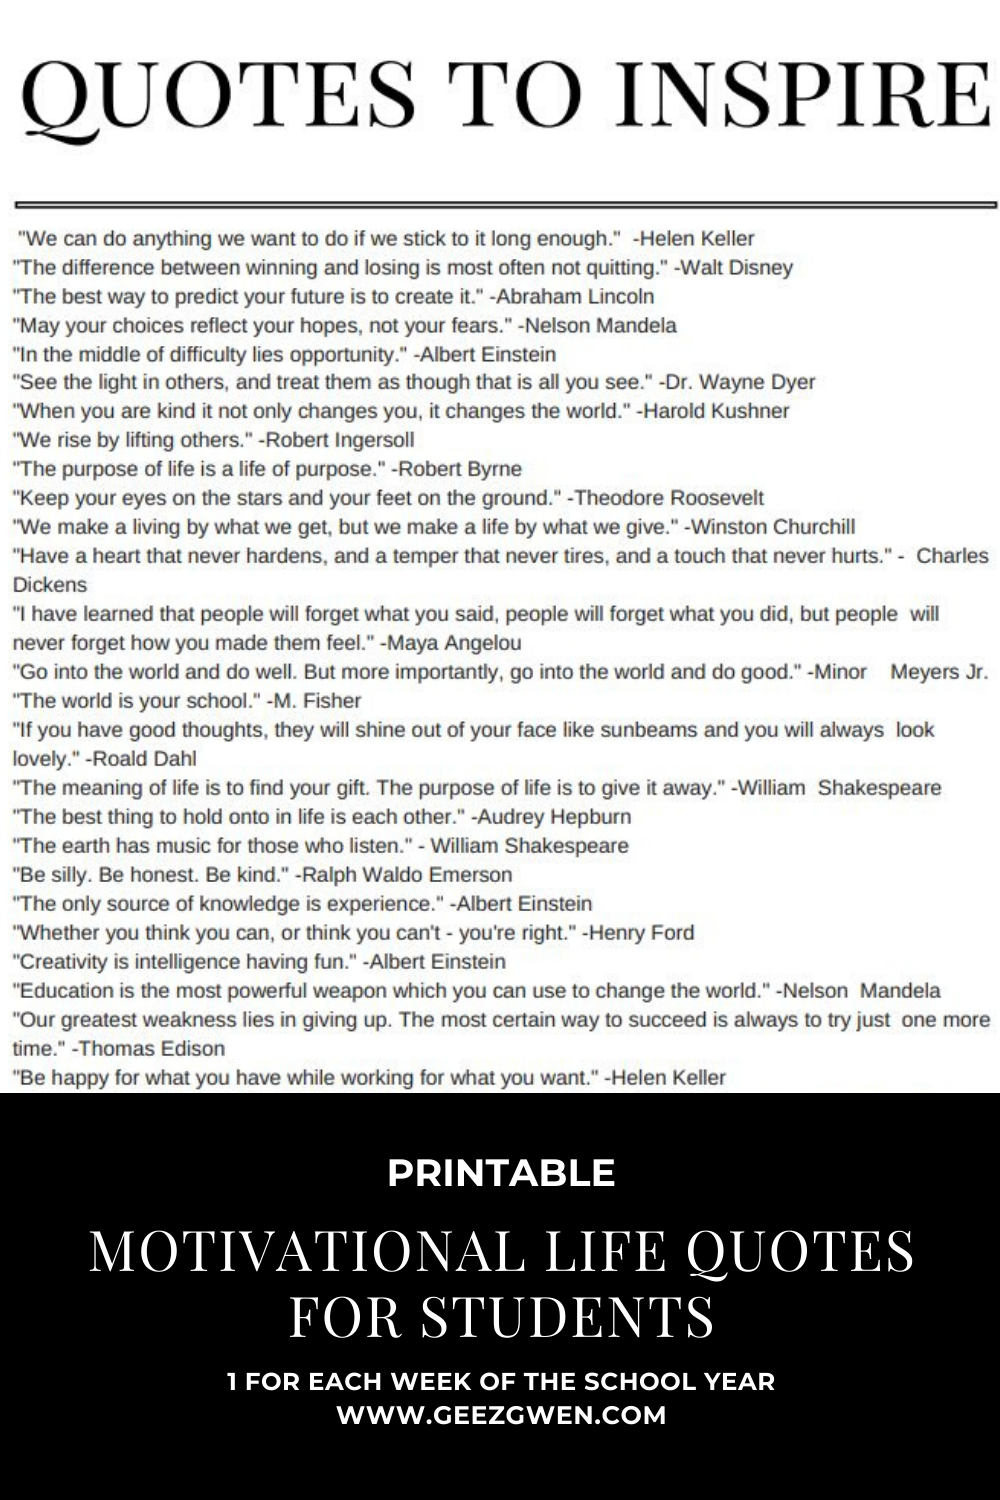 Printable List of Motivational Quotes for students